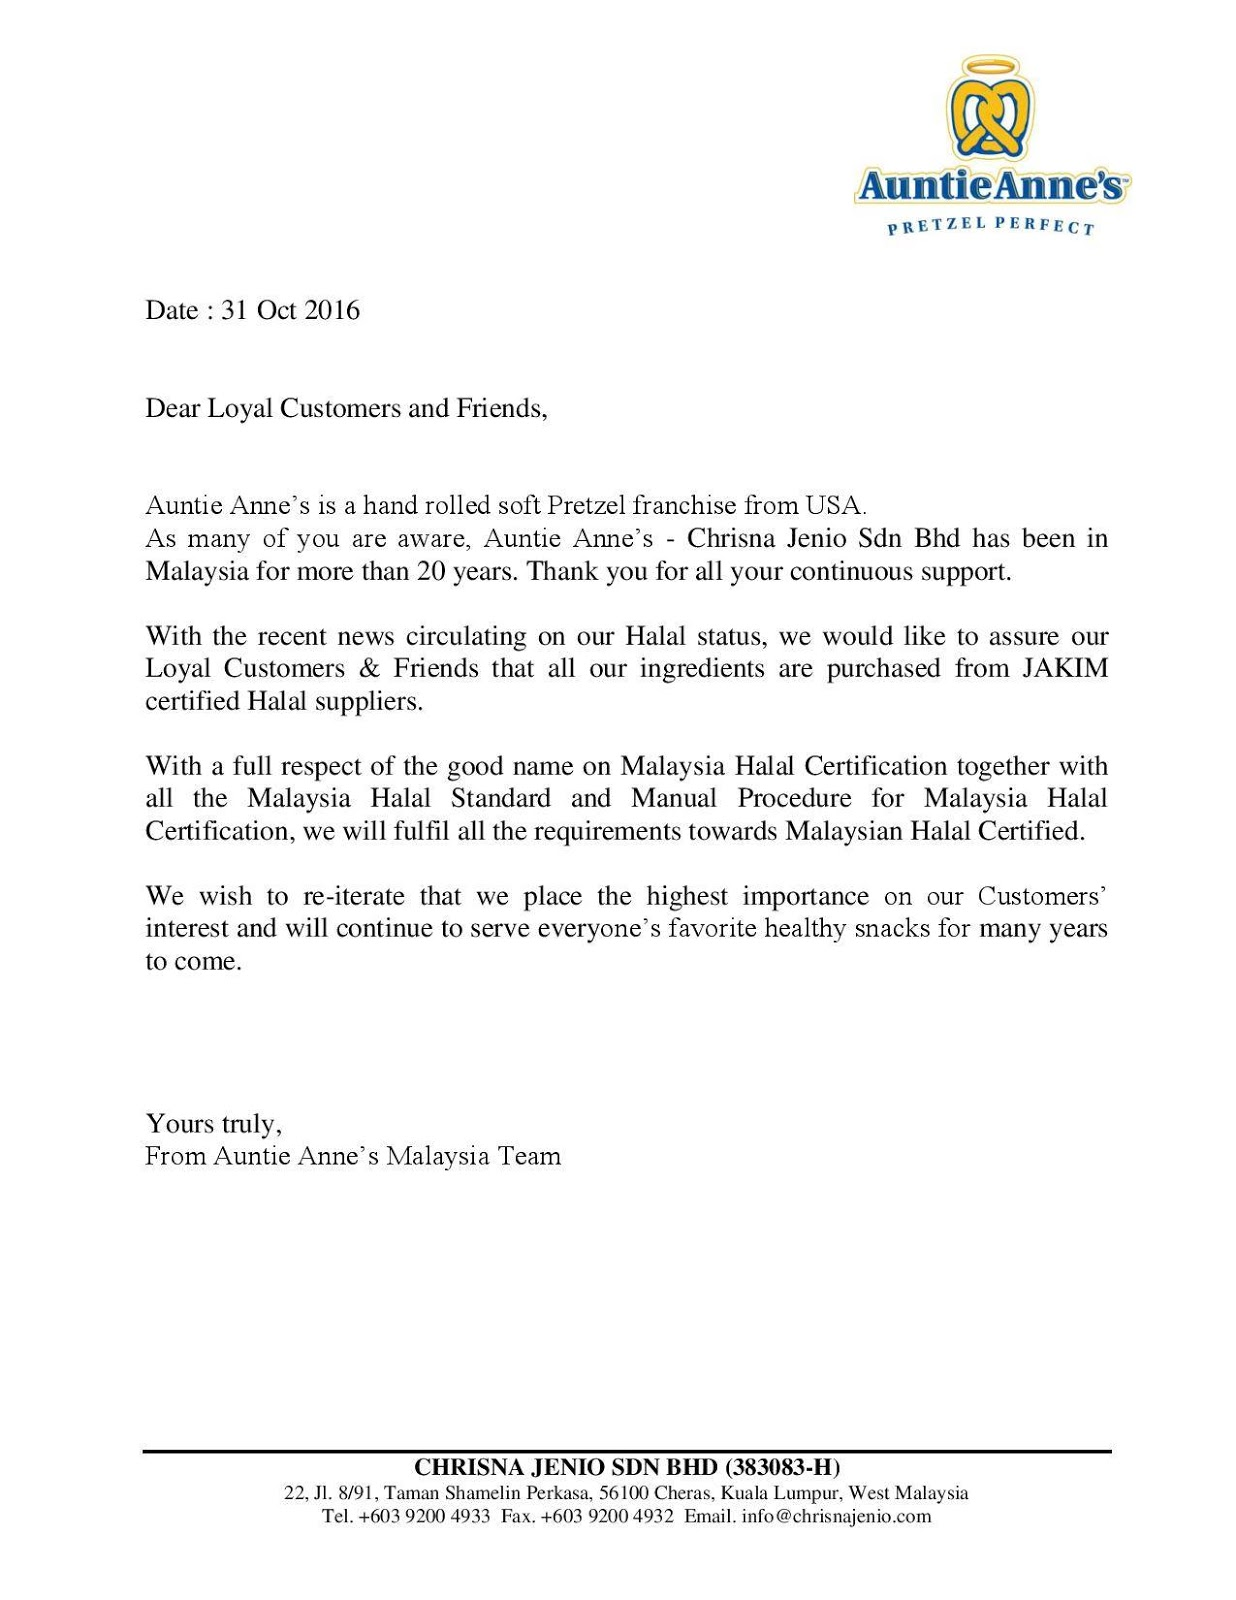 Suroor asia muslims in malaysia want halal certified eateries source auntie annes malaysia facebook page letter assuring customers that it uses halal xflitez Images